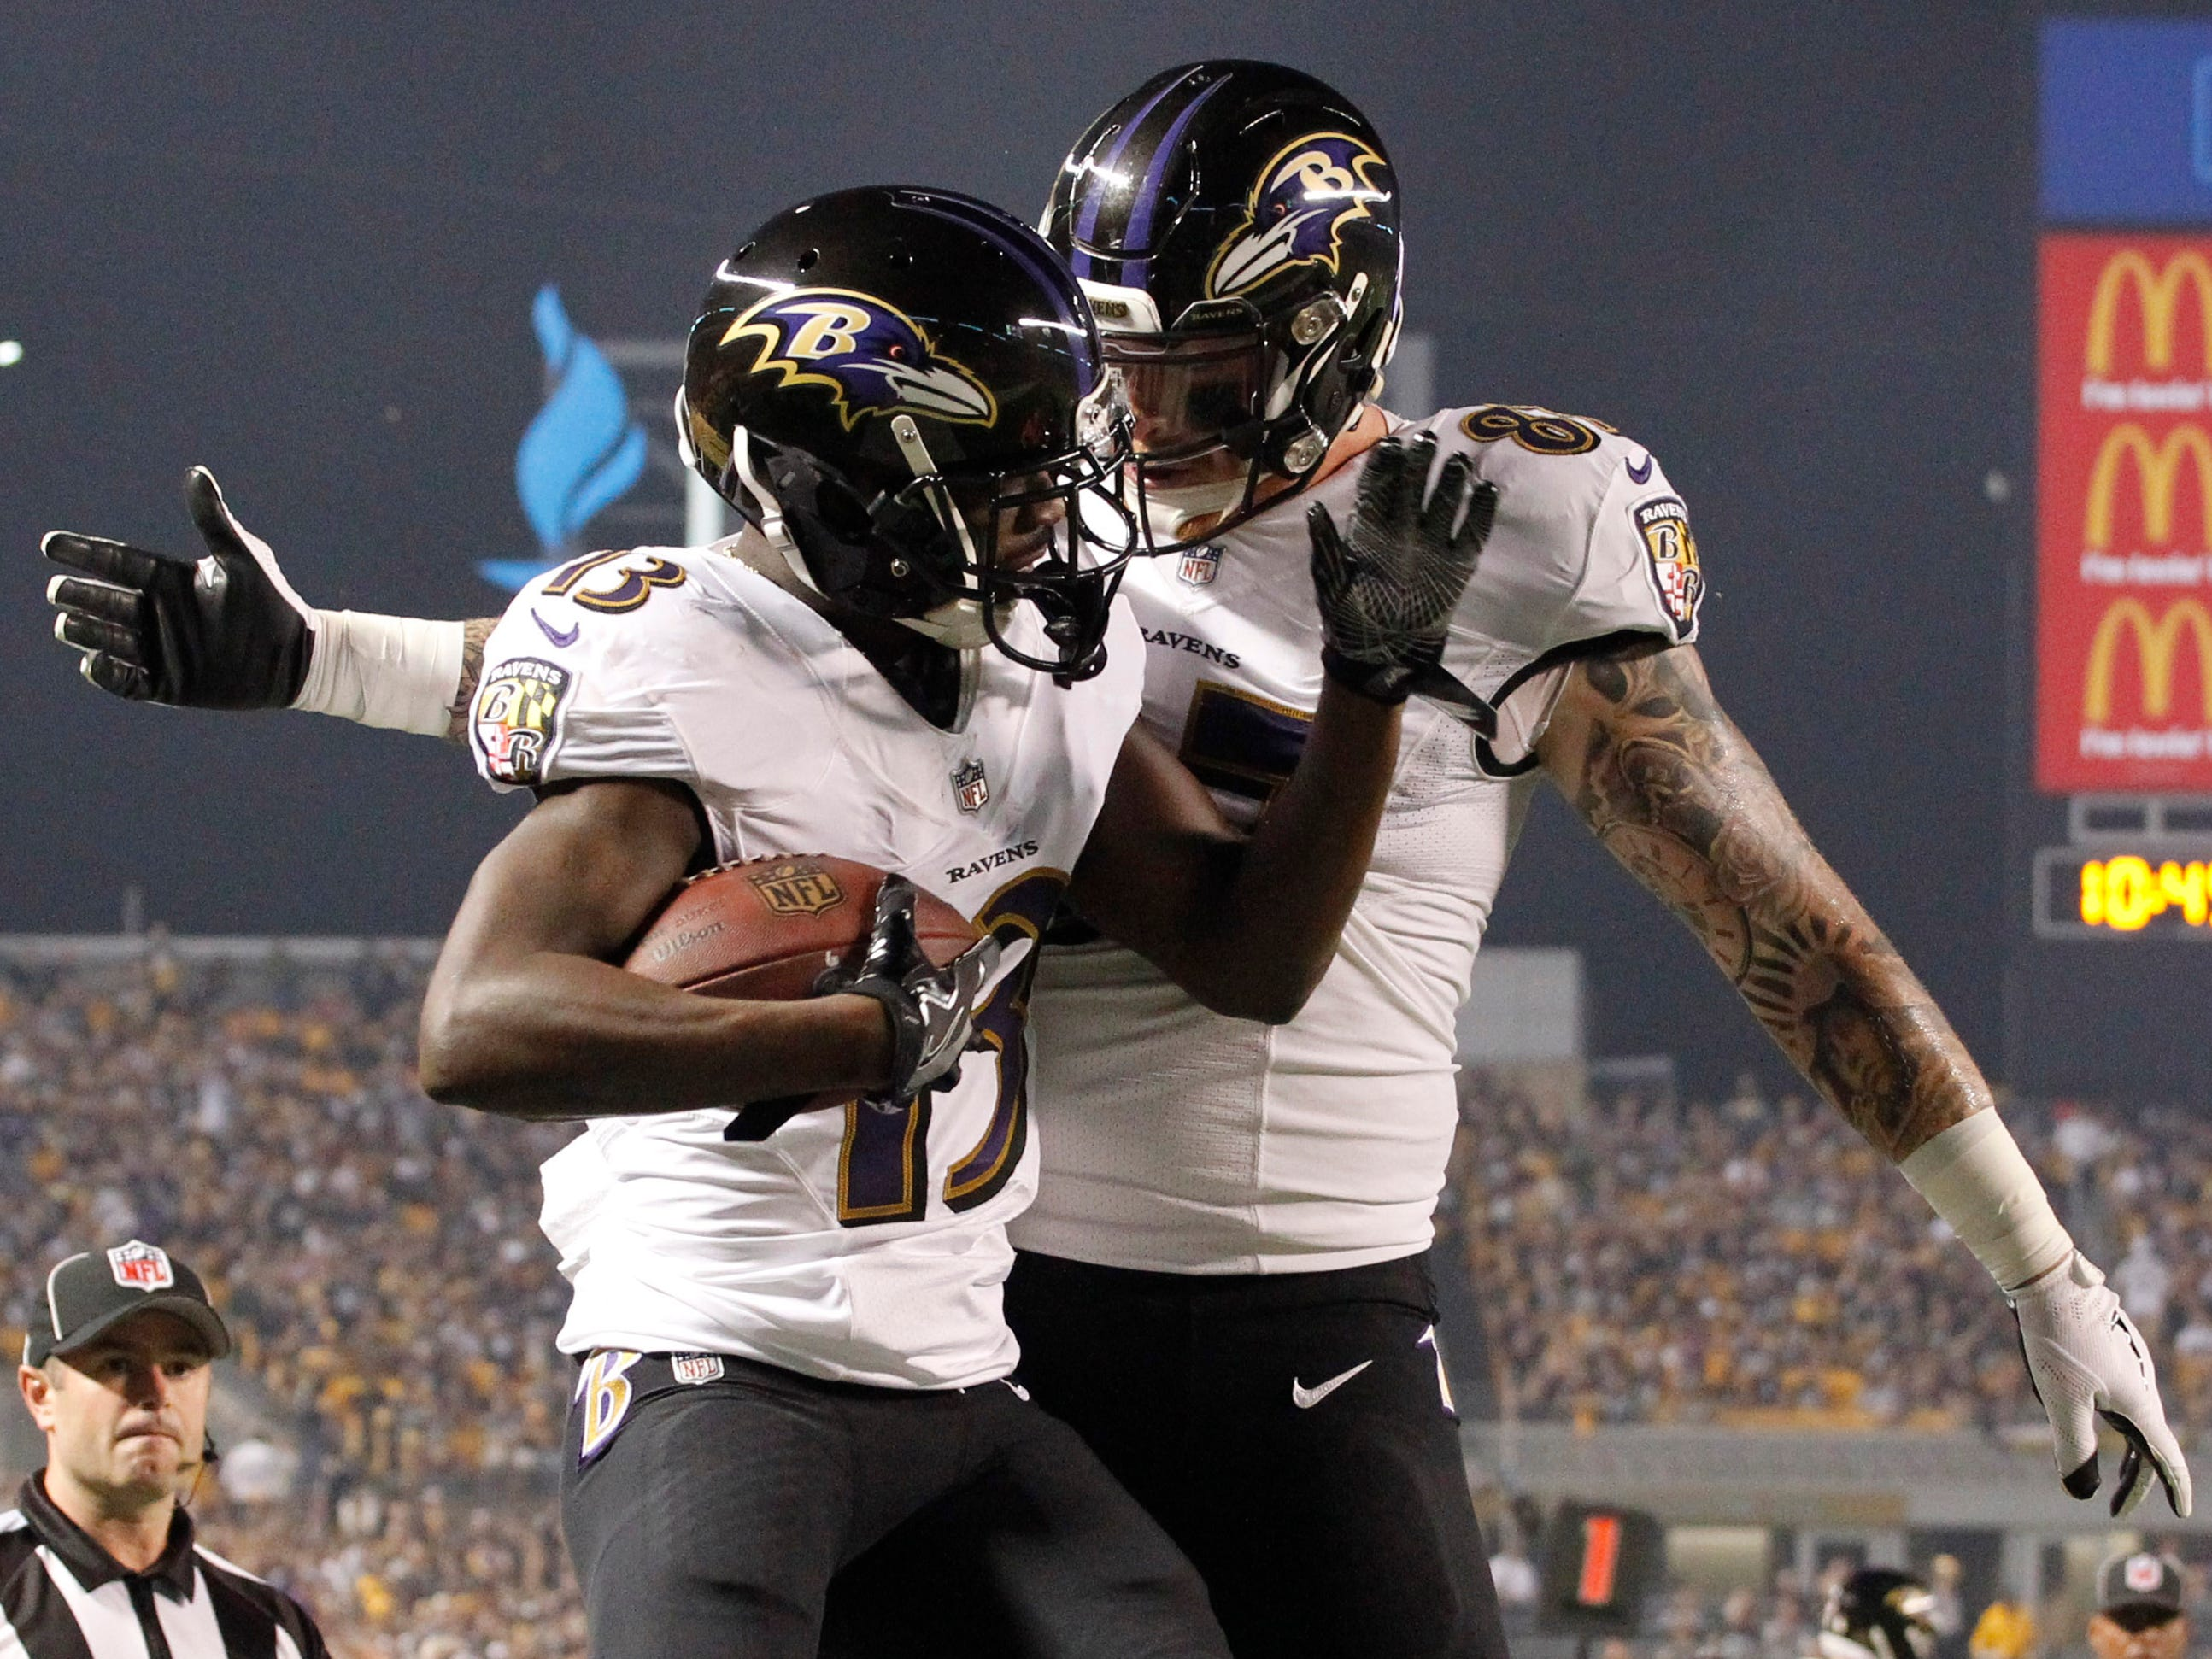 Baltimore Ravens wide receiver John Brown (13) celebrates his touchdown catch with teammate Maxx Williams during the first quarter against the Pittsburgh Steelers at Heinz Field.